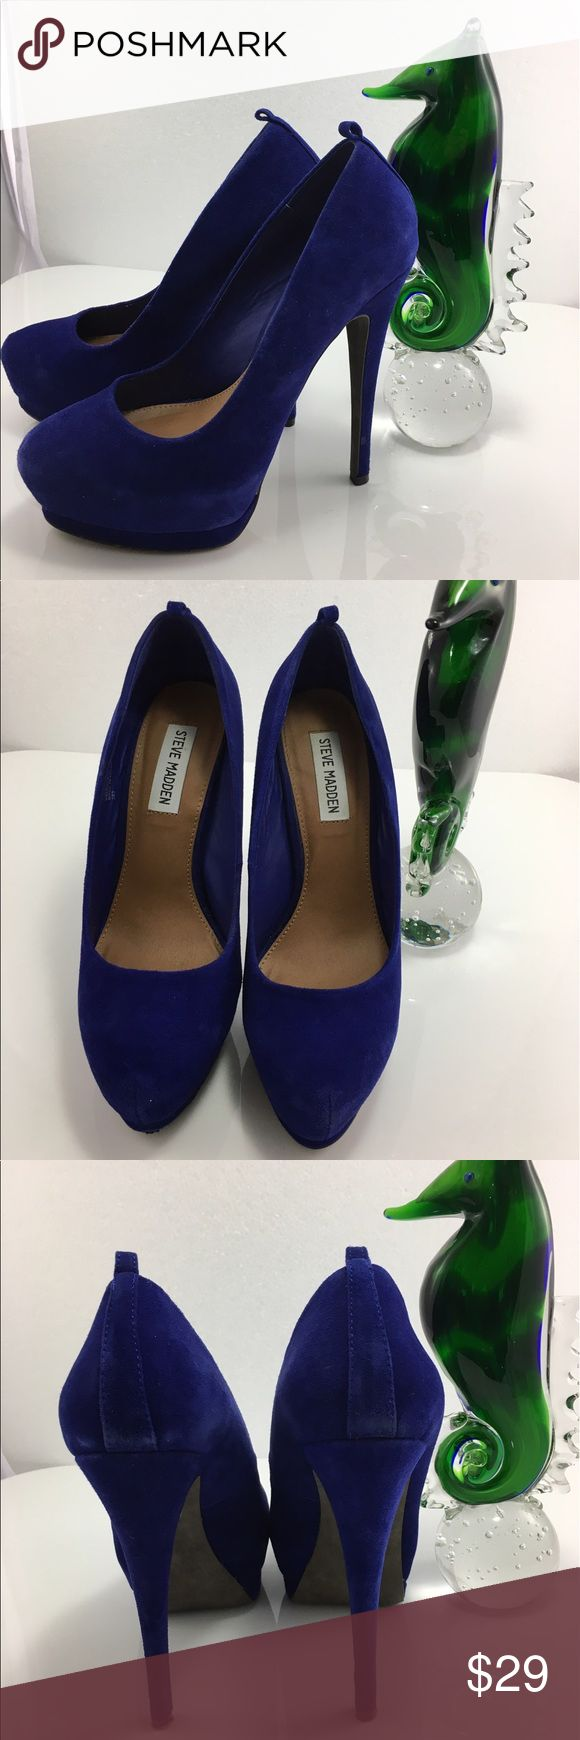 "💸Steve Madden Obsessed deep blue suede pump sz 8M 💸Steve Madden Obsessed deep blue suede pumps in size 8M. Heel height 5 1/2"" high. Platform 1/2"" in front. You are looking at a pair of Steve Madden pumps in Obsessed style. Heels and soles have little user wear (see pic) otherwise these heels are ready to wear! Absolutely gorgeous, soft and comfy! Steve Madden Shoes Platforms"